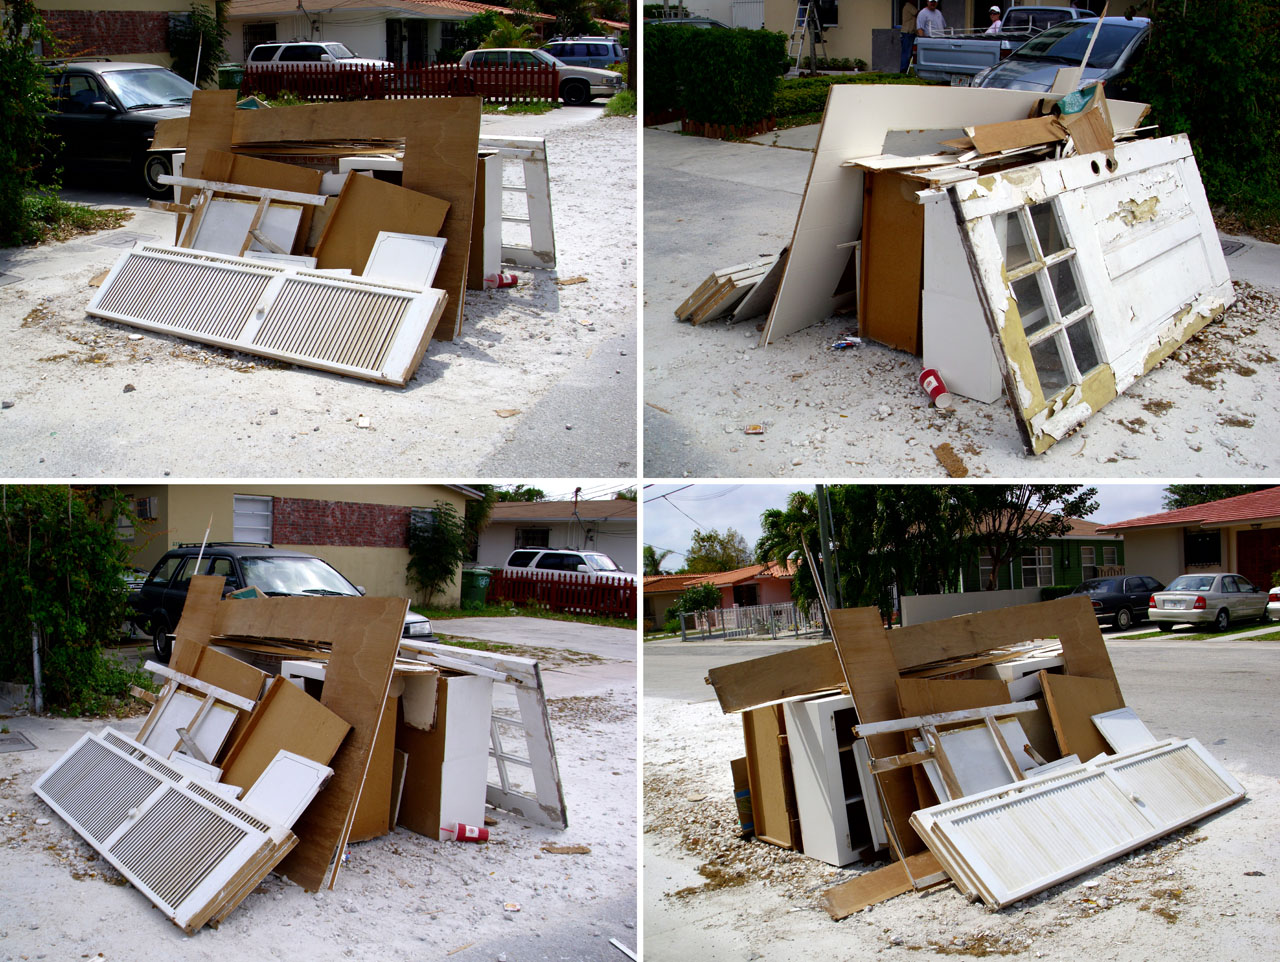 Composition No. 8 (Little Havana,  Miami, FL.), 2009 - ongoing.